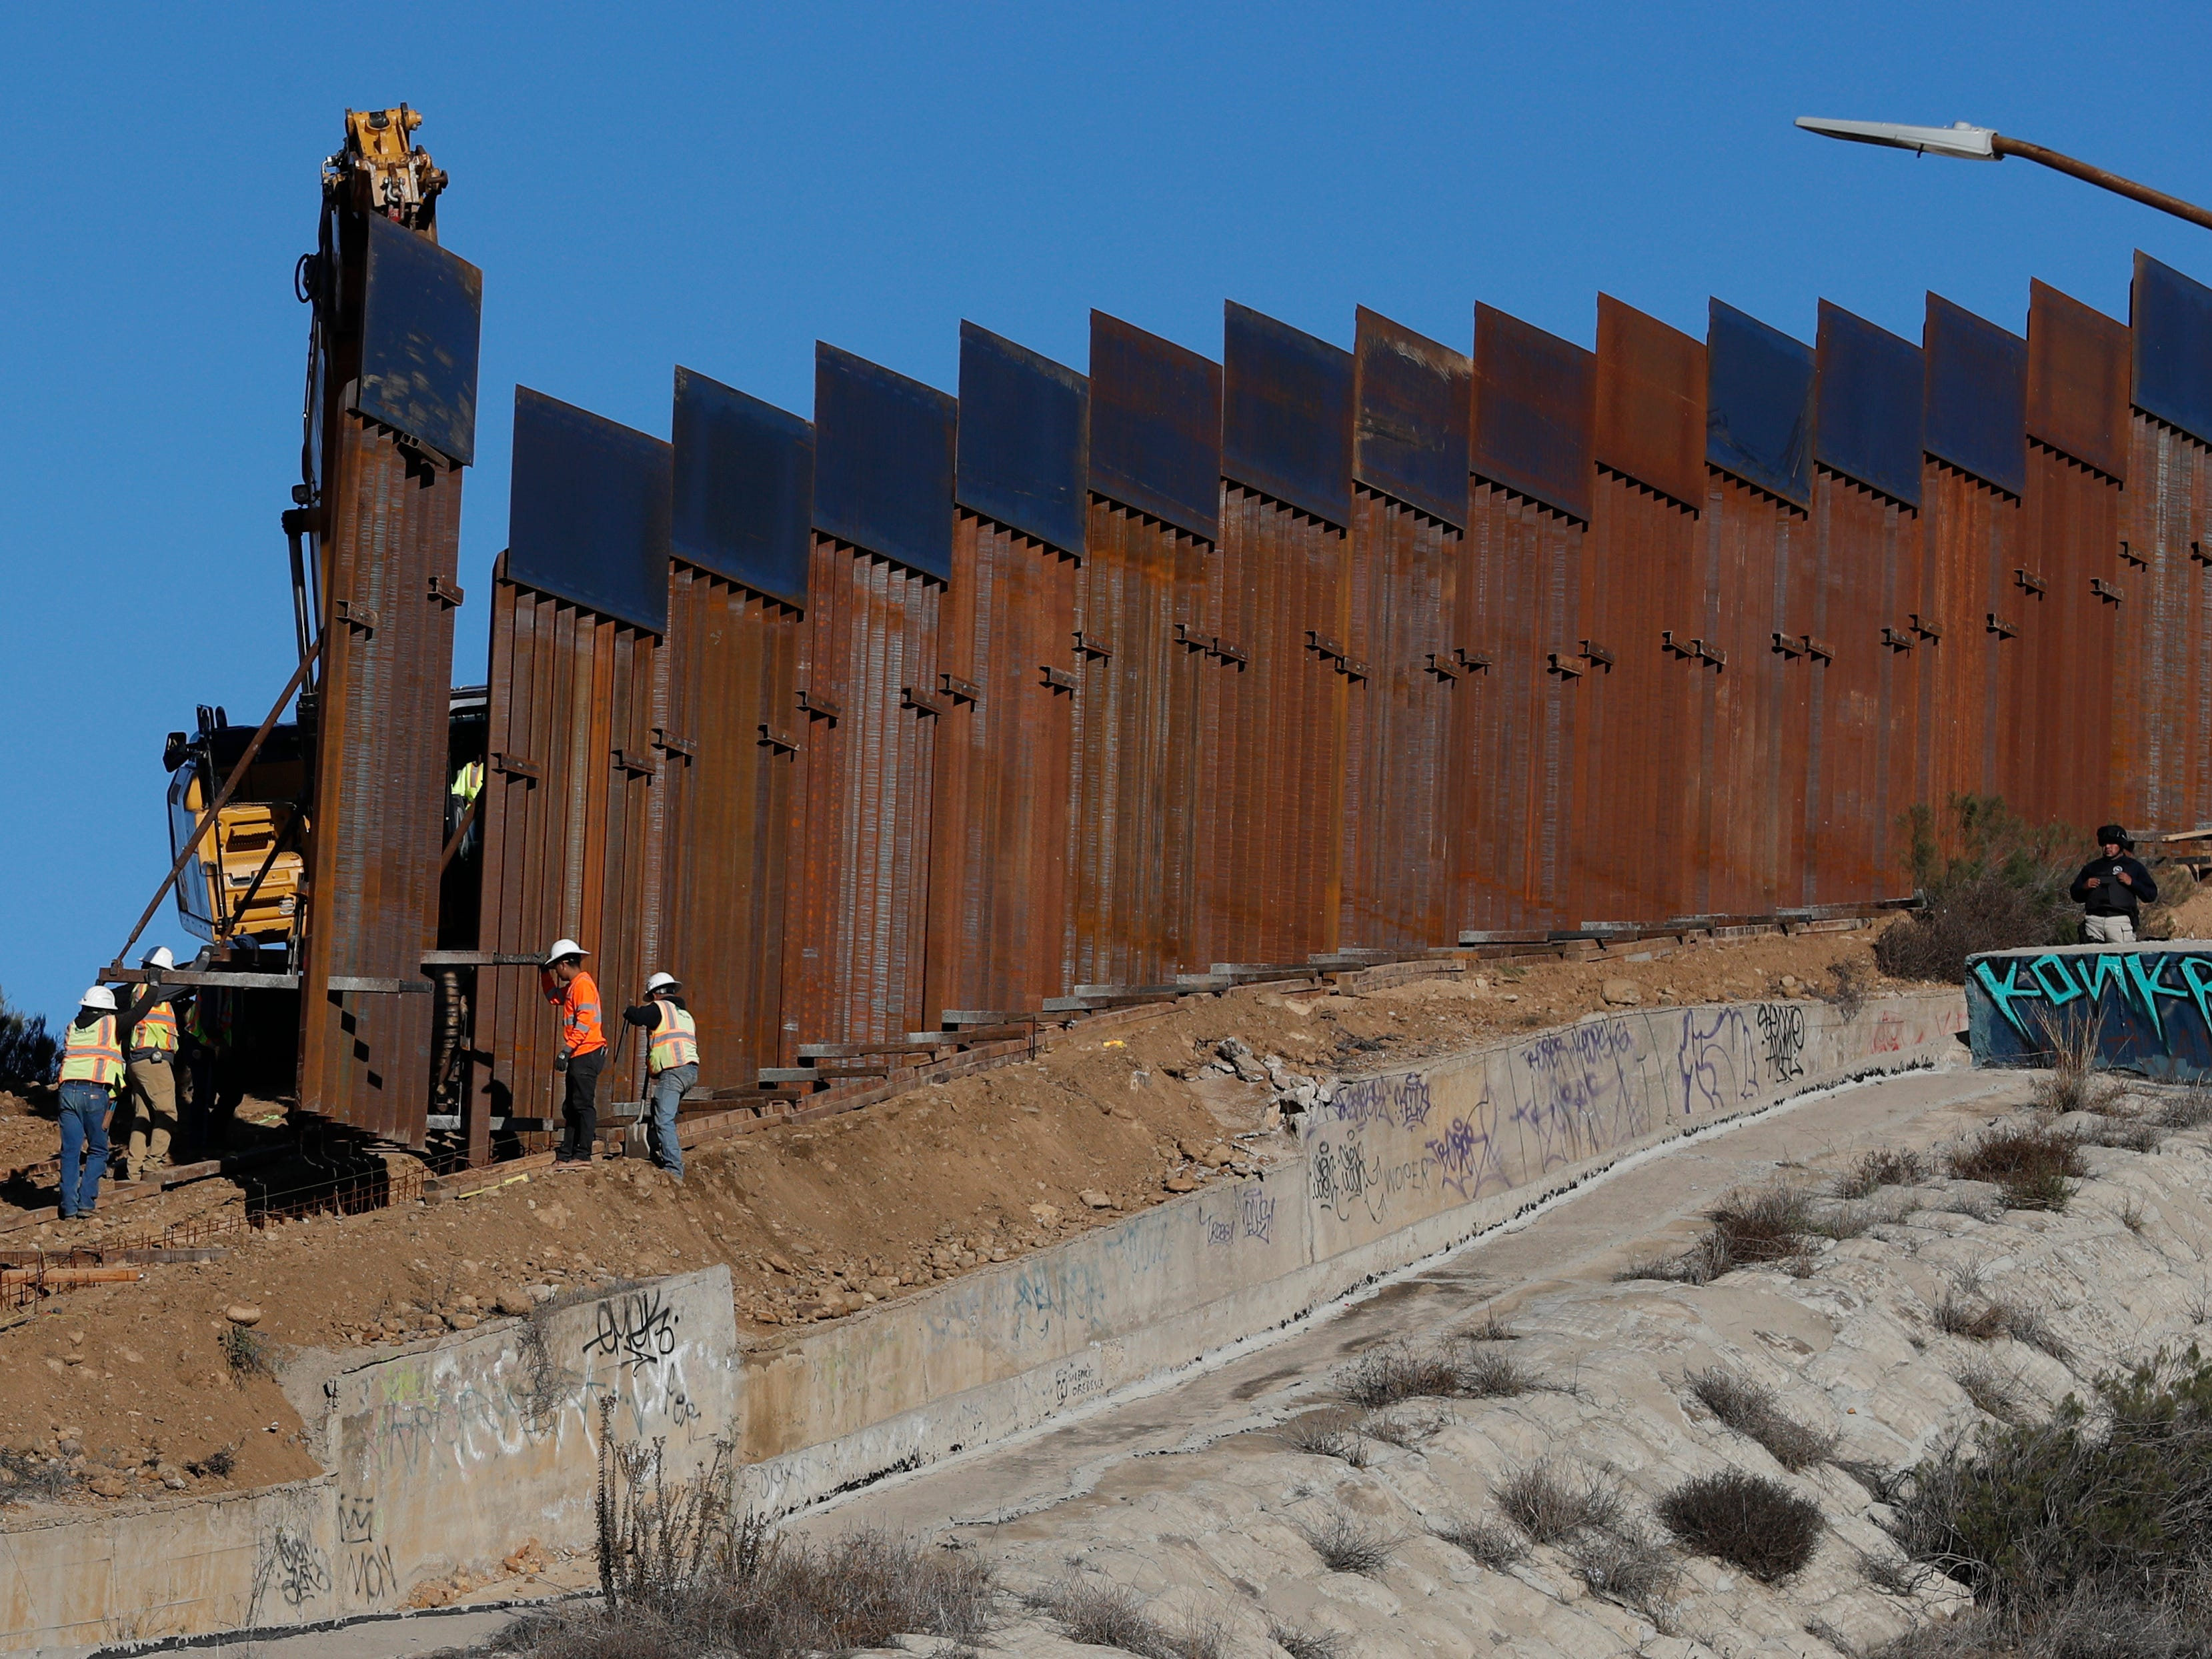 Workers add new sections to the border wall in Tijuana, Mexico on Dec. 8, 2018.